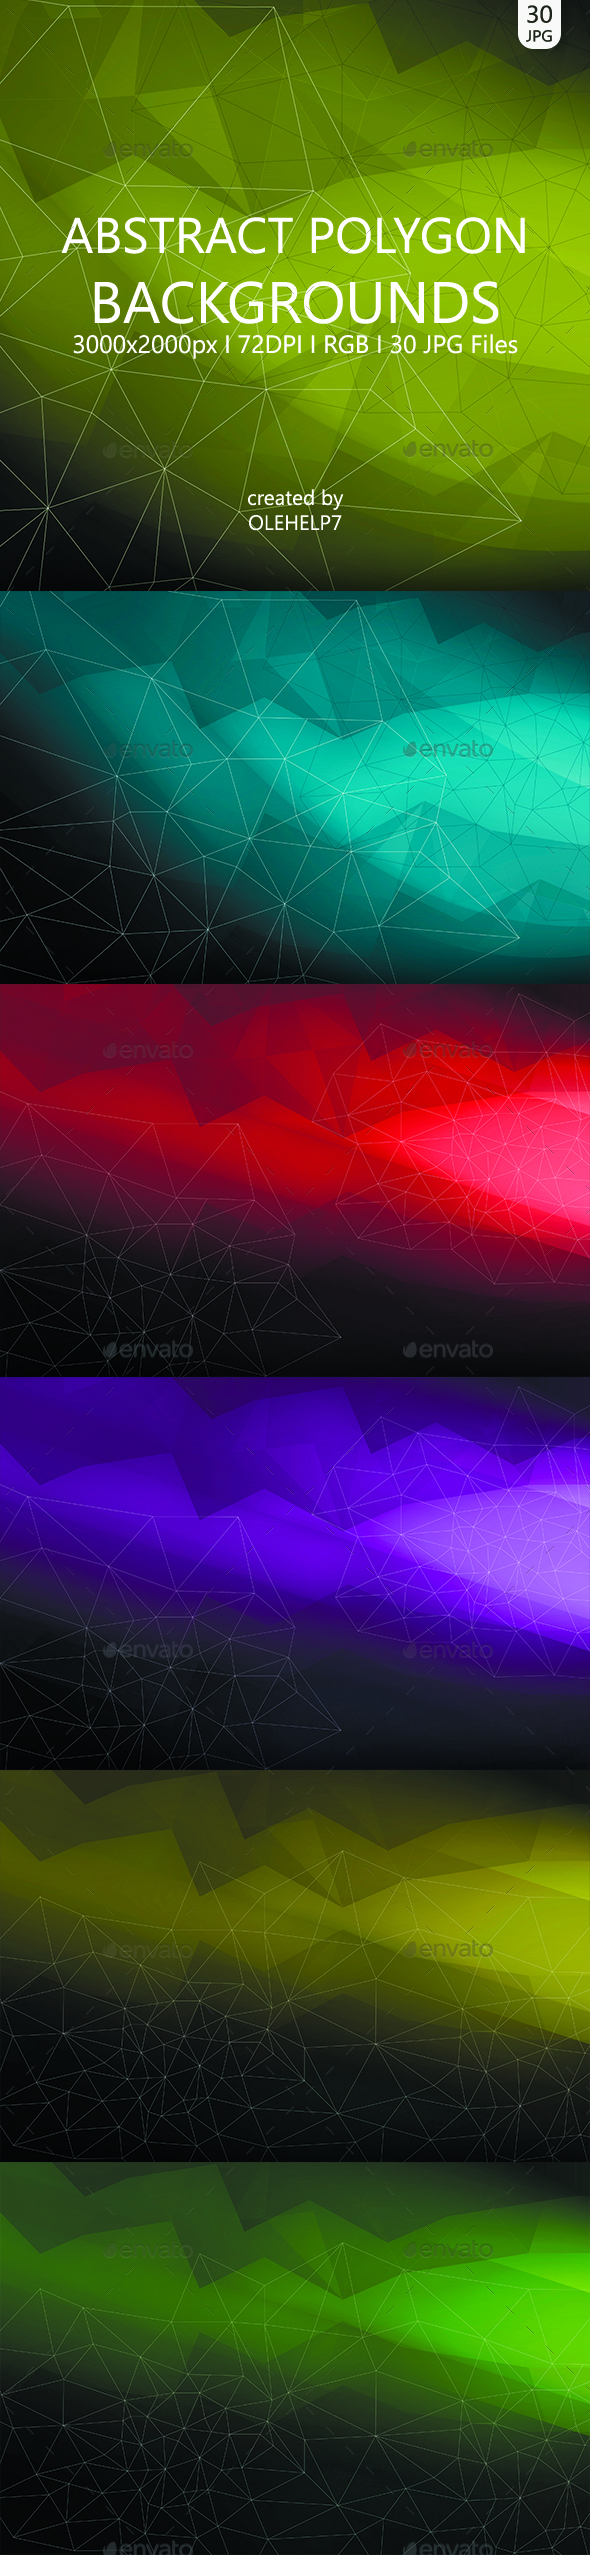 Abstract Polygon 30 Backgrounds - Abstract Backgrounds